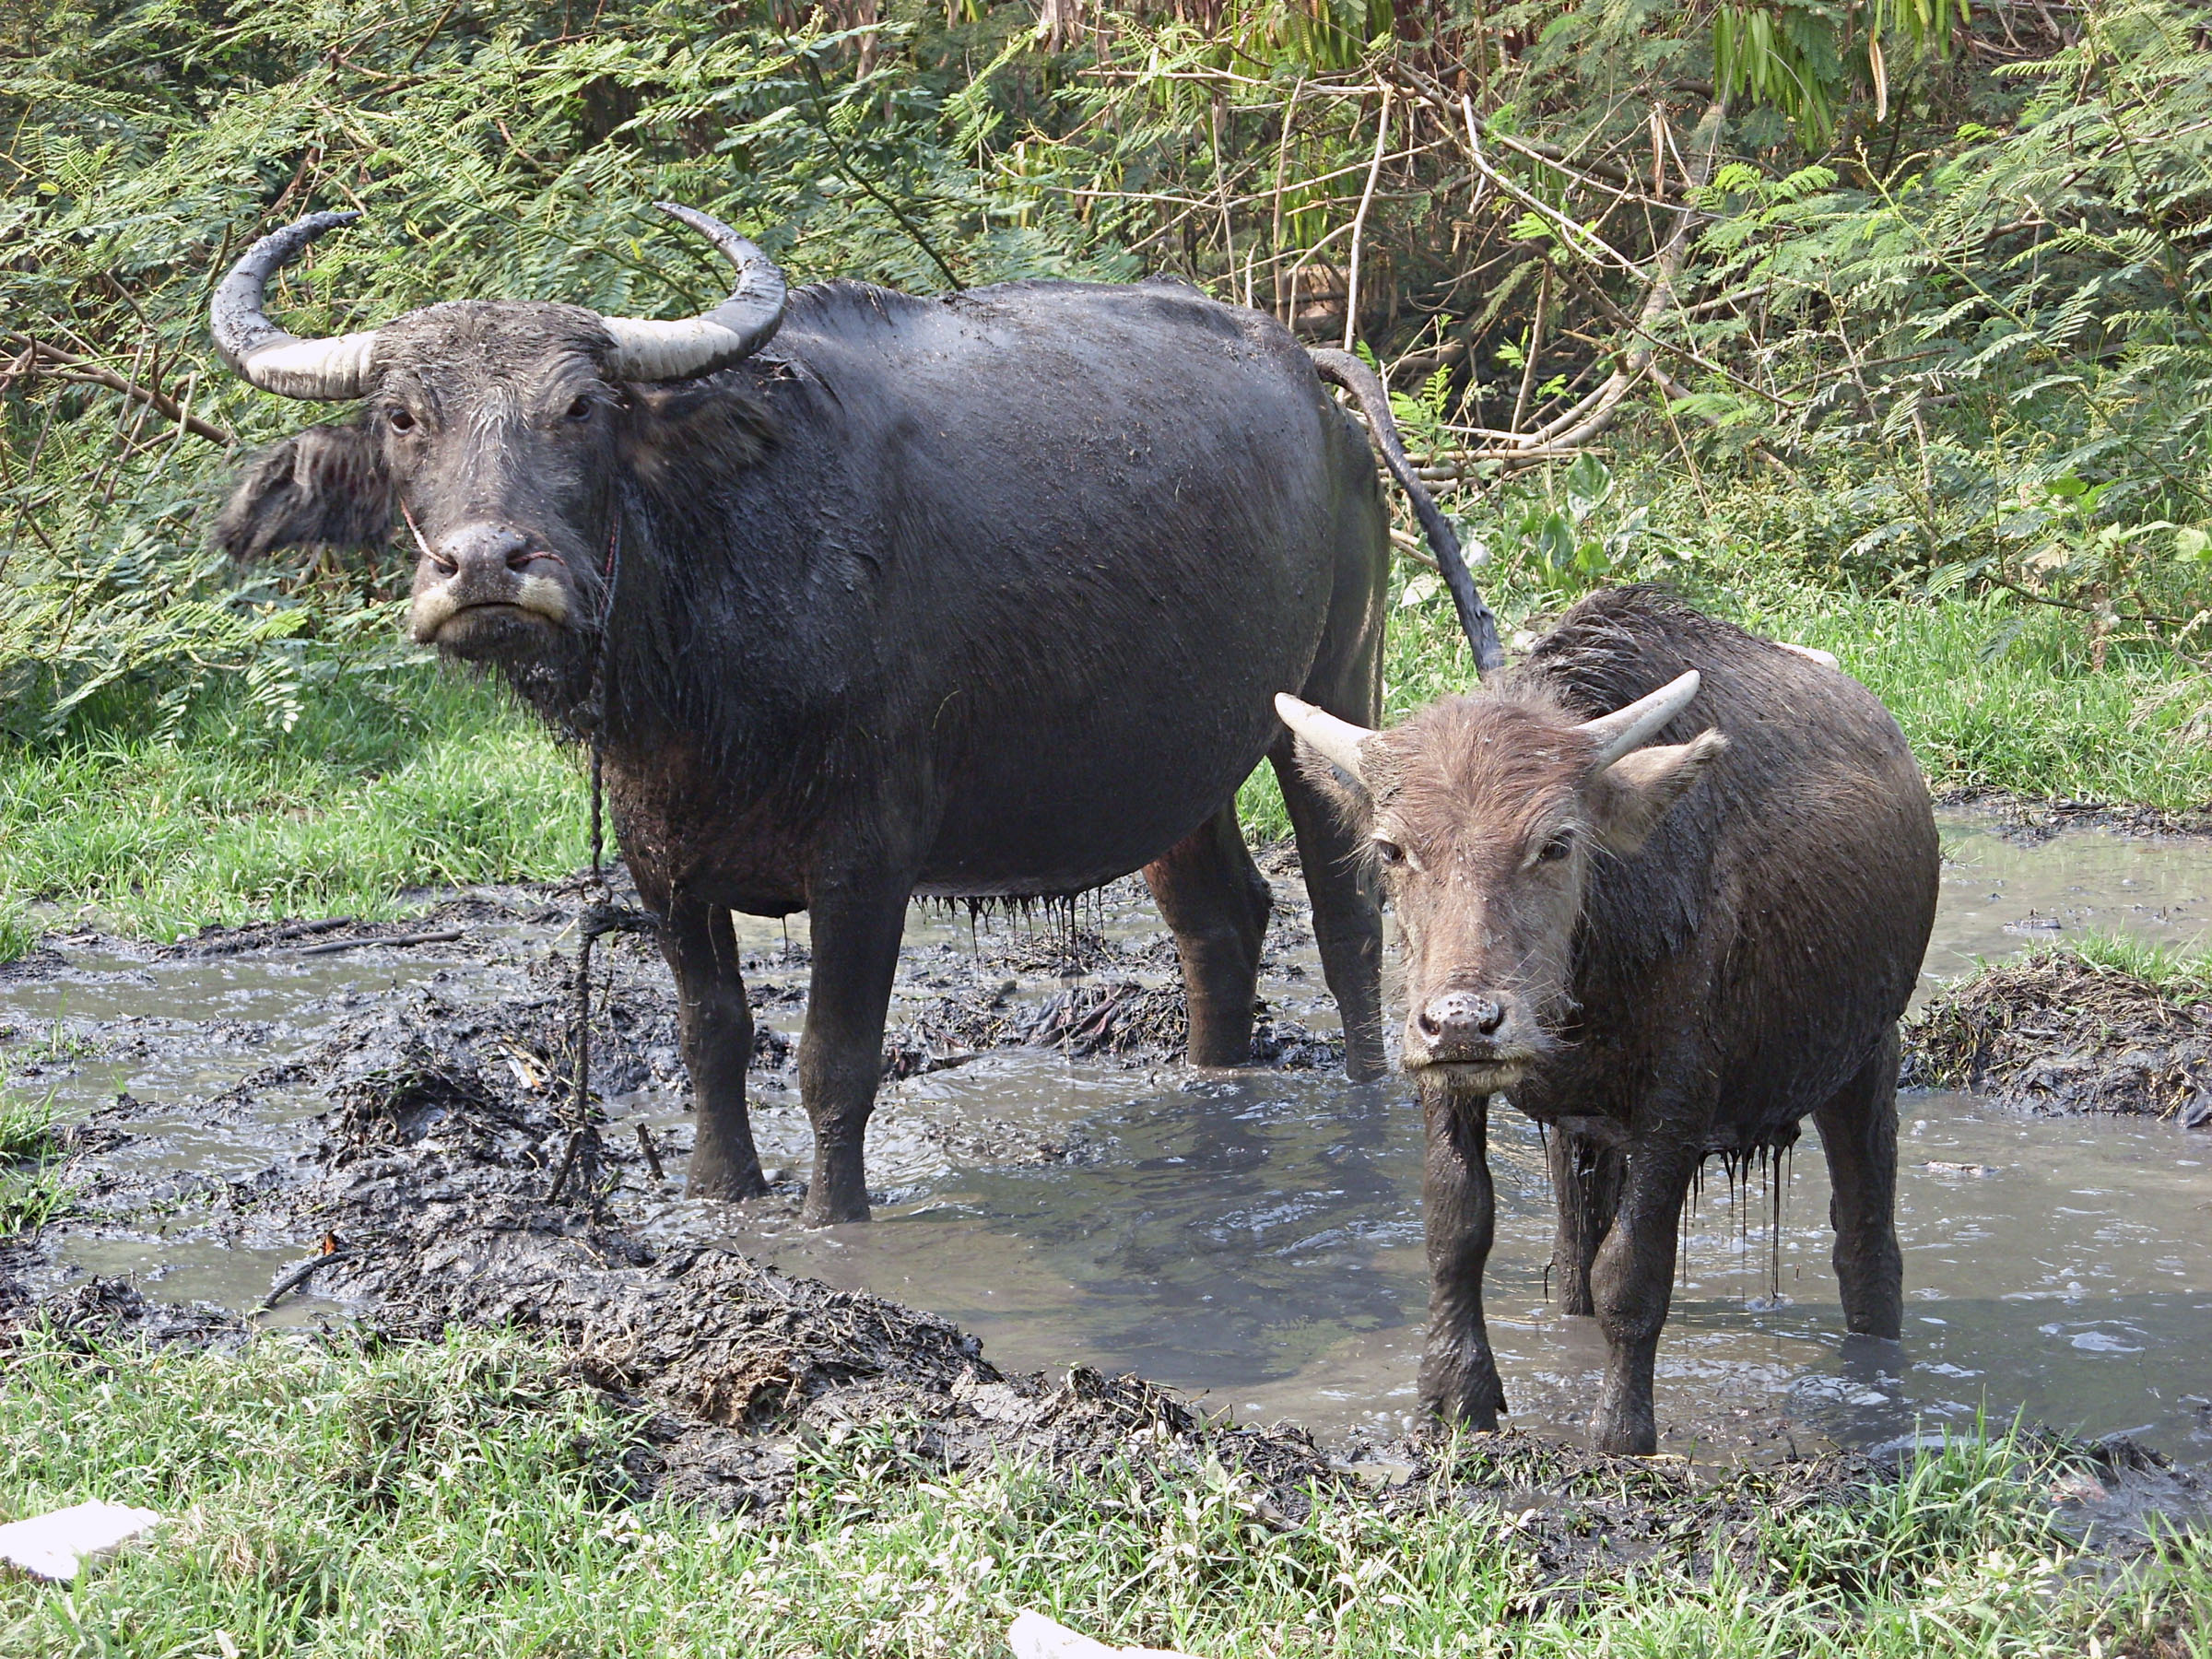 Water Buffalo, Buffalo, Bull, Calf, Male, HQ Photo